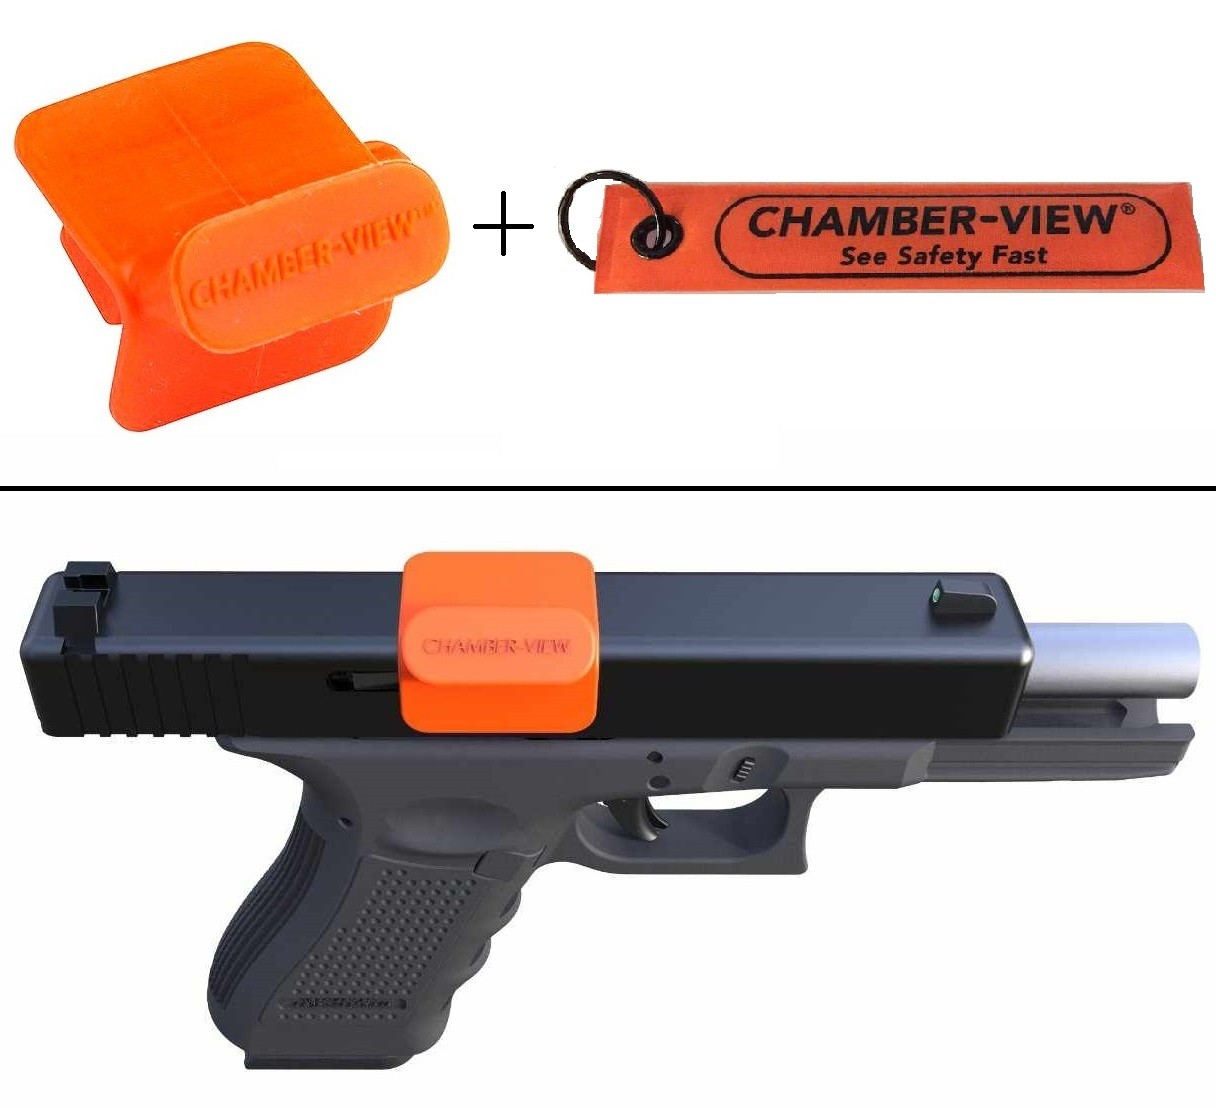 Ultimate Arms Gear Kimber Chamber-View 9mm .40 Cal Pistol Hand Gun Empty Chamber Safety Flag Dummy Ammunition Ammo Shell Round + Fast Pull-Tag Identification